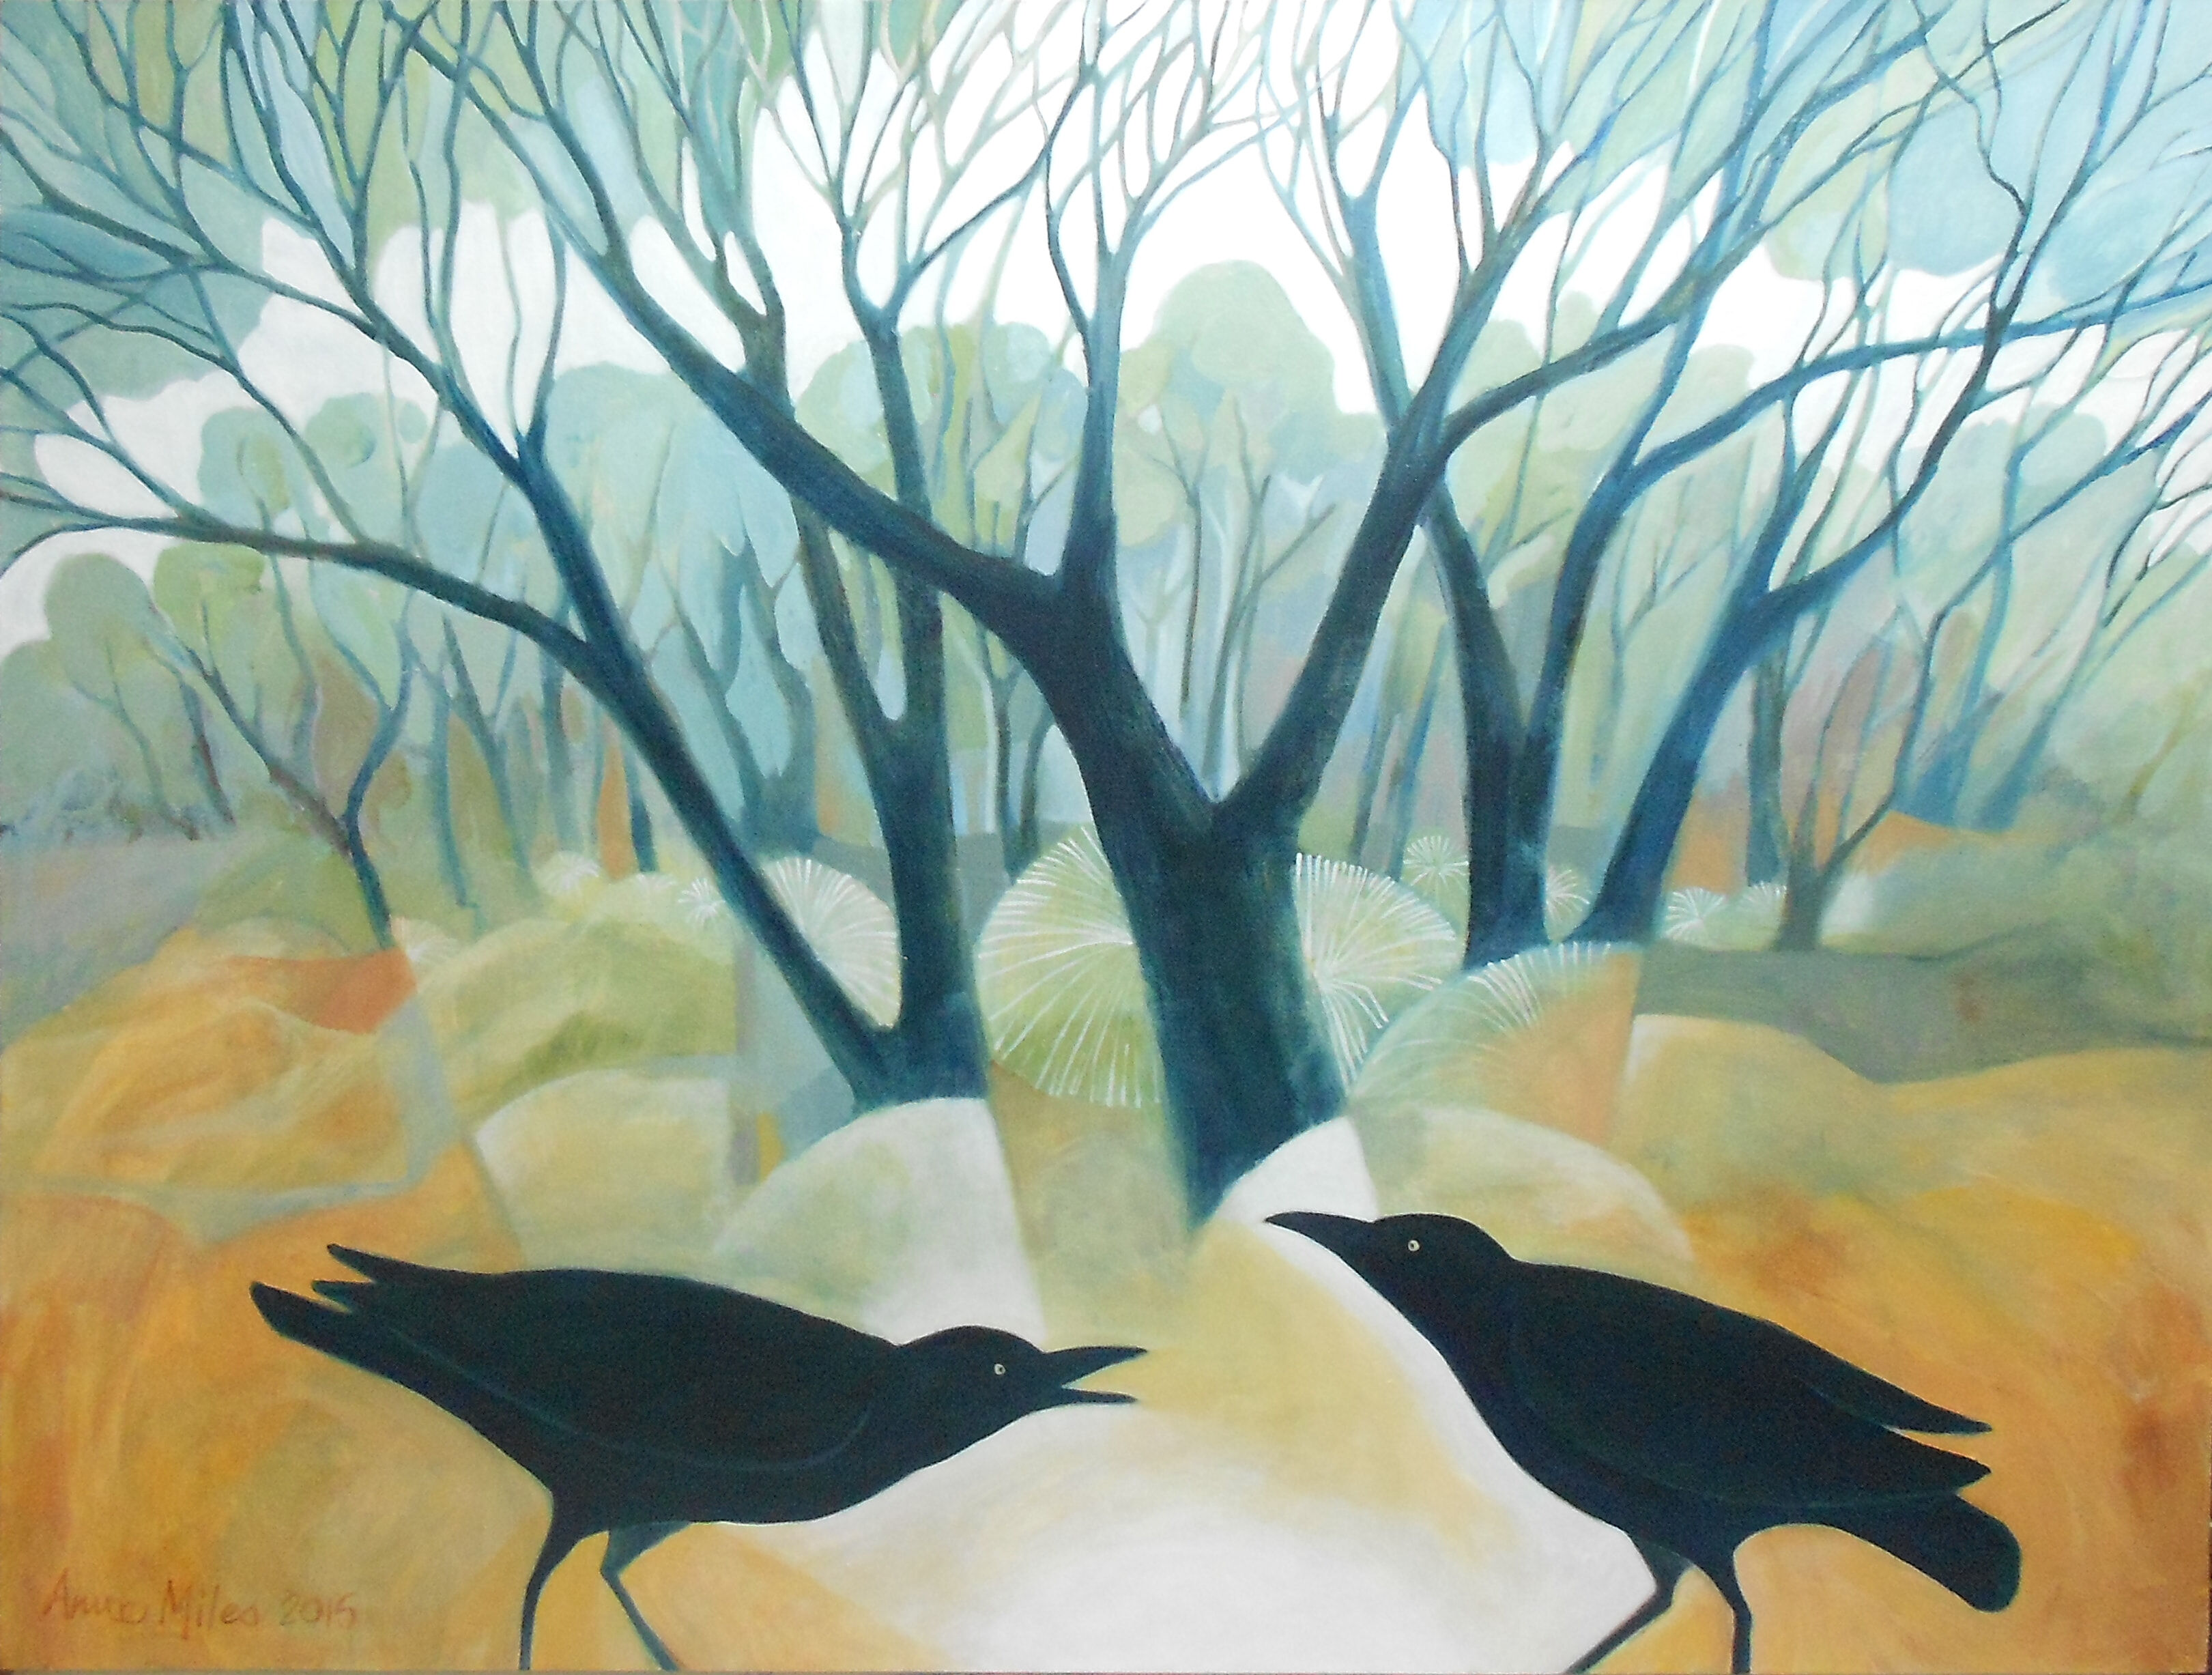 FOREST RAVENS - Oil on canvas - 100 x 75cms - Anne Miles 2015